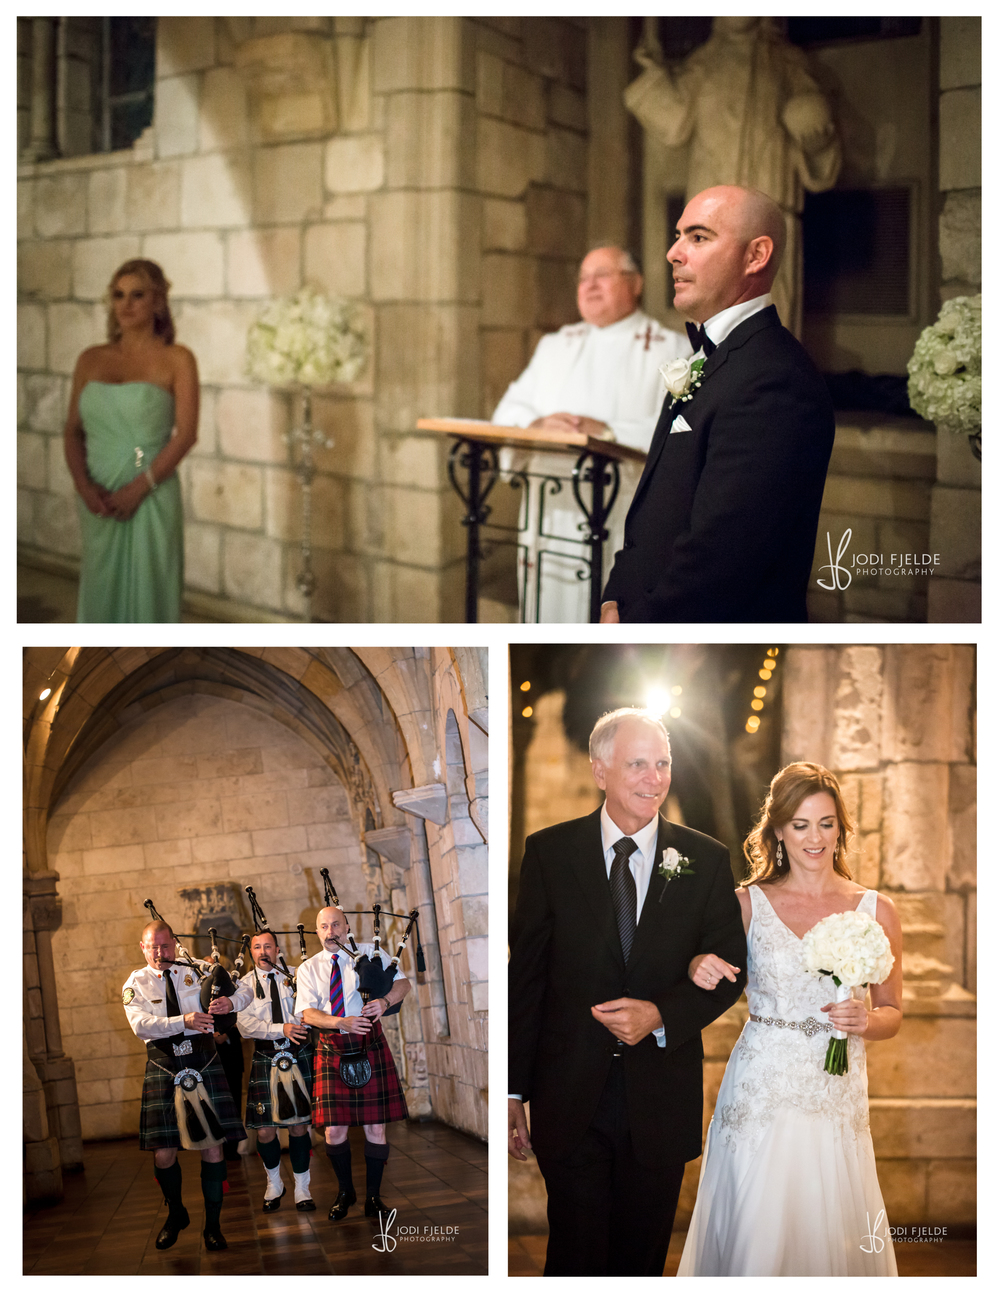 Ancient_Spanish_Monastery_Miami_Florida_wedding_Gio_Iggy_Jodi_Fjelde_Photography_9.jpg